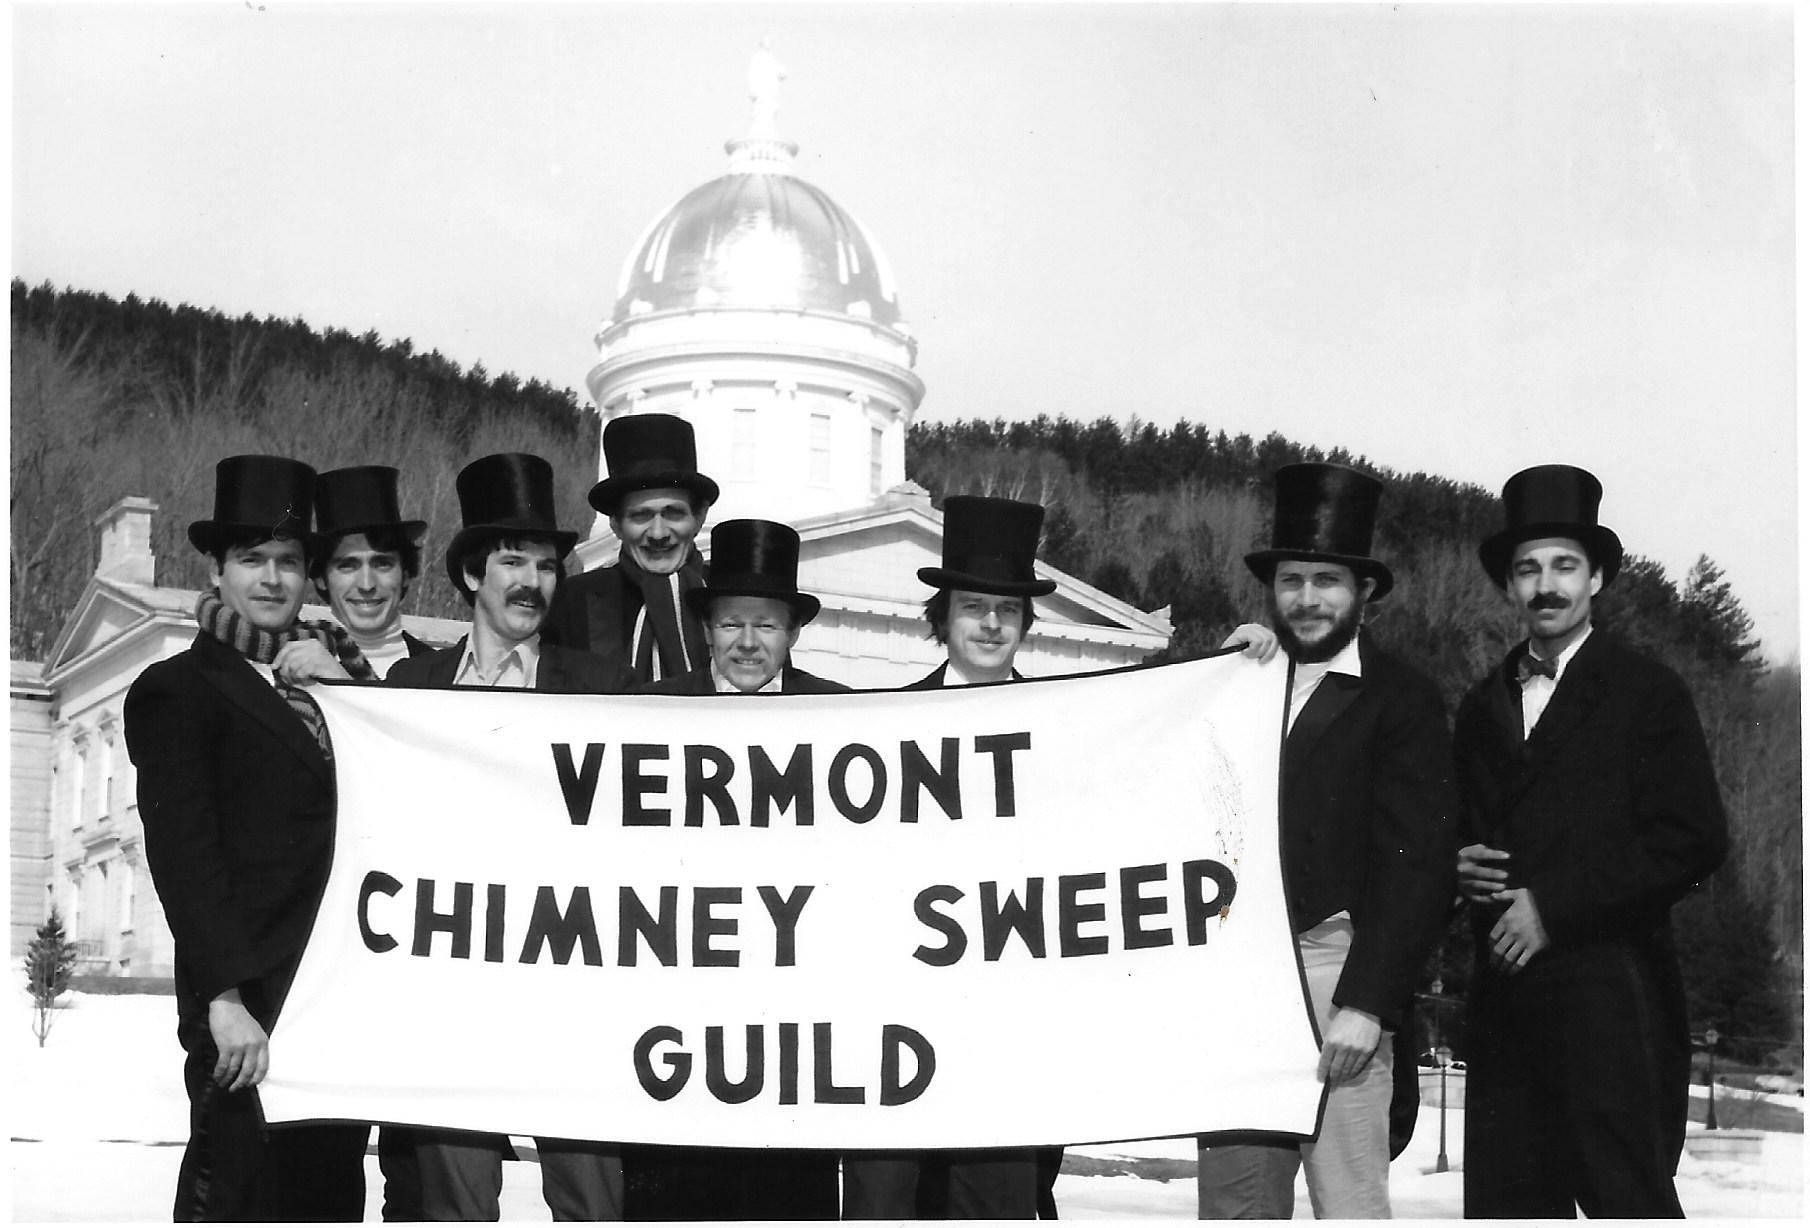 Raymond plagge (3rd from right) posing for a dapper pic with the Vermont Chimney Sweep guild (sometime in the late 70's)